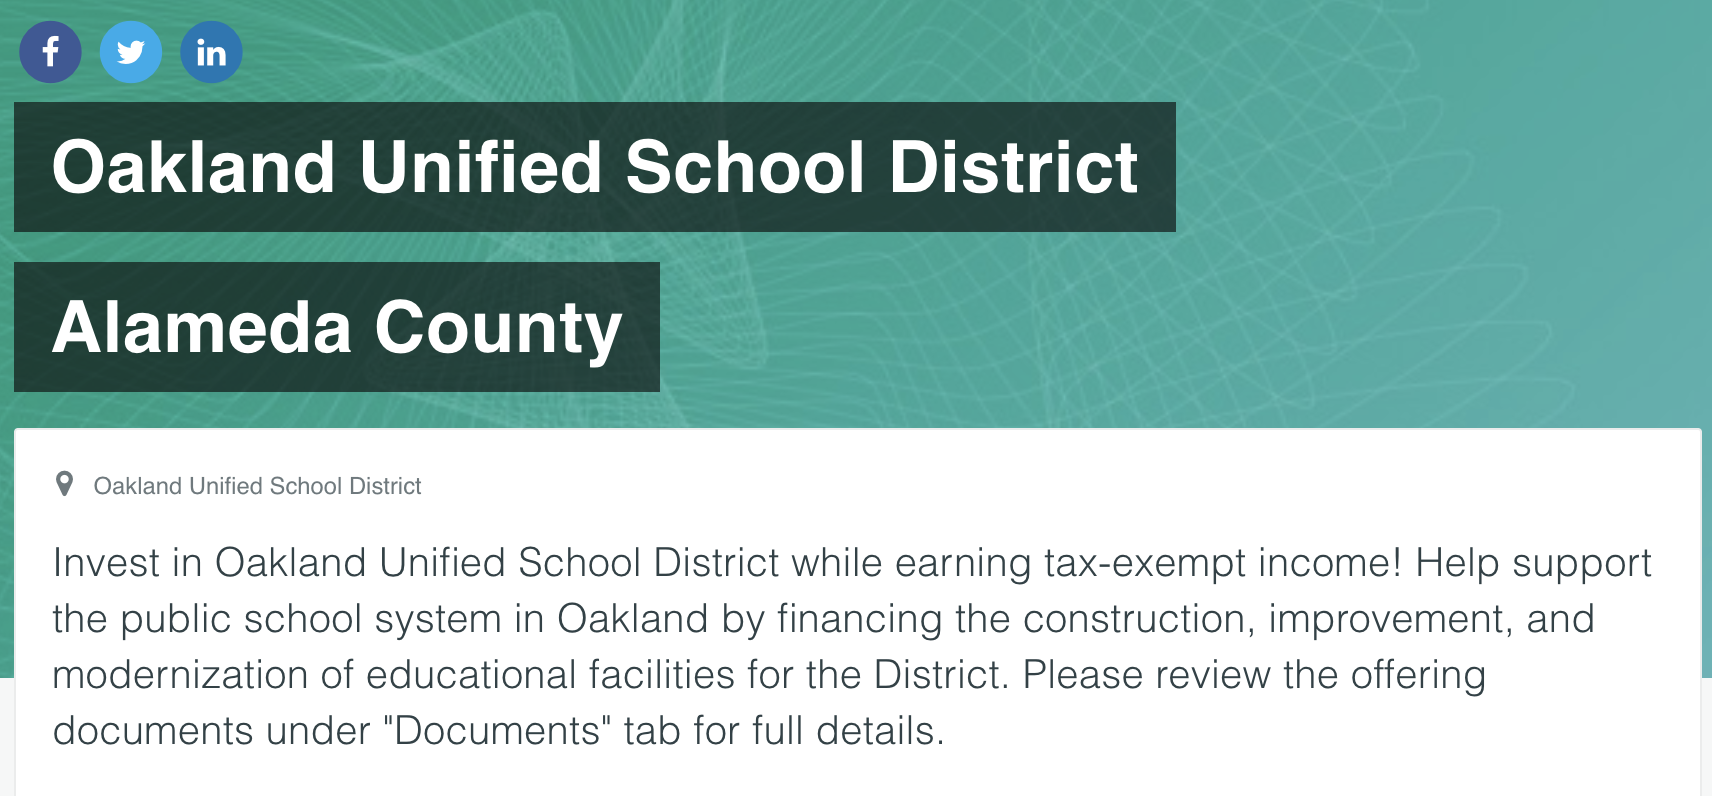 Using Neighborly, individuals can invest in public projects, like public schools in Oakland, CA.